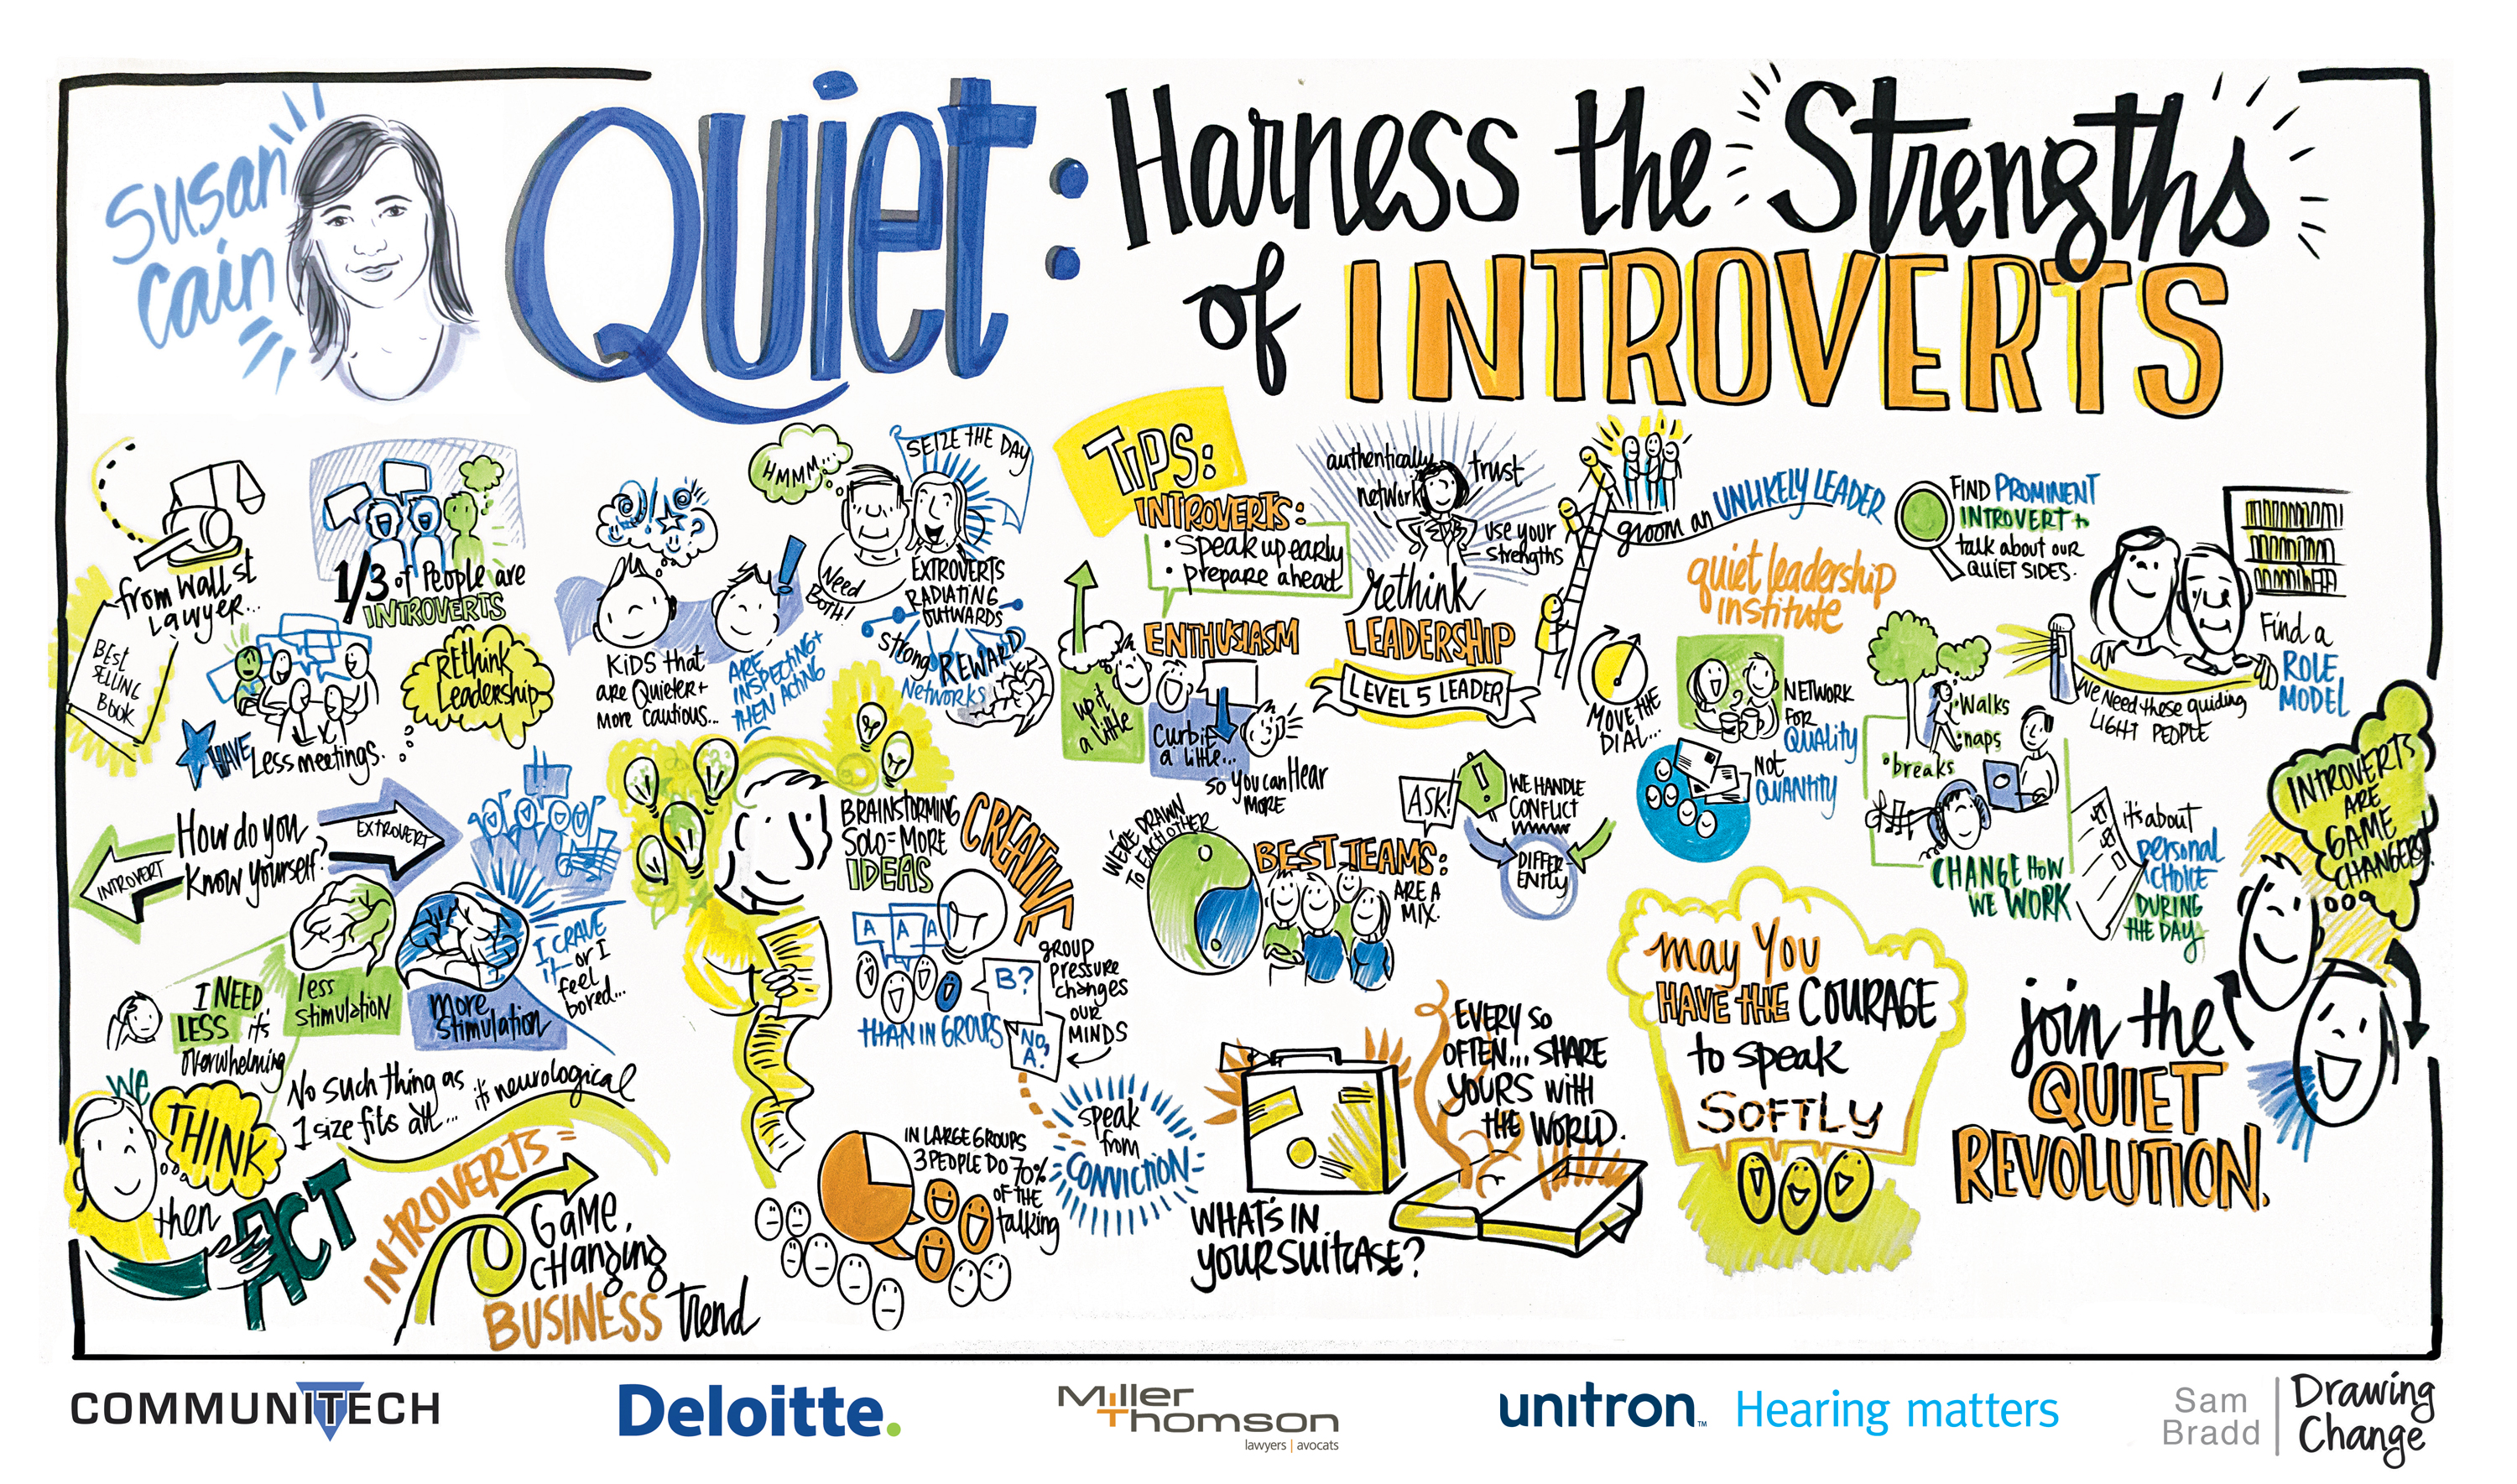 Graphic recording archives page 6 of 13 drawing change graphic recording of susan cains keynote on leadership and introverts at communitechs tlcwr conference 2015 pronofoot35fo Images